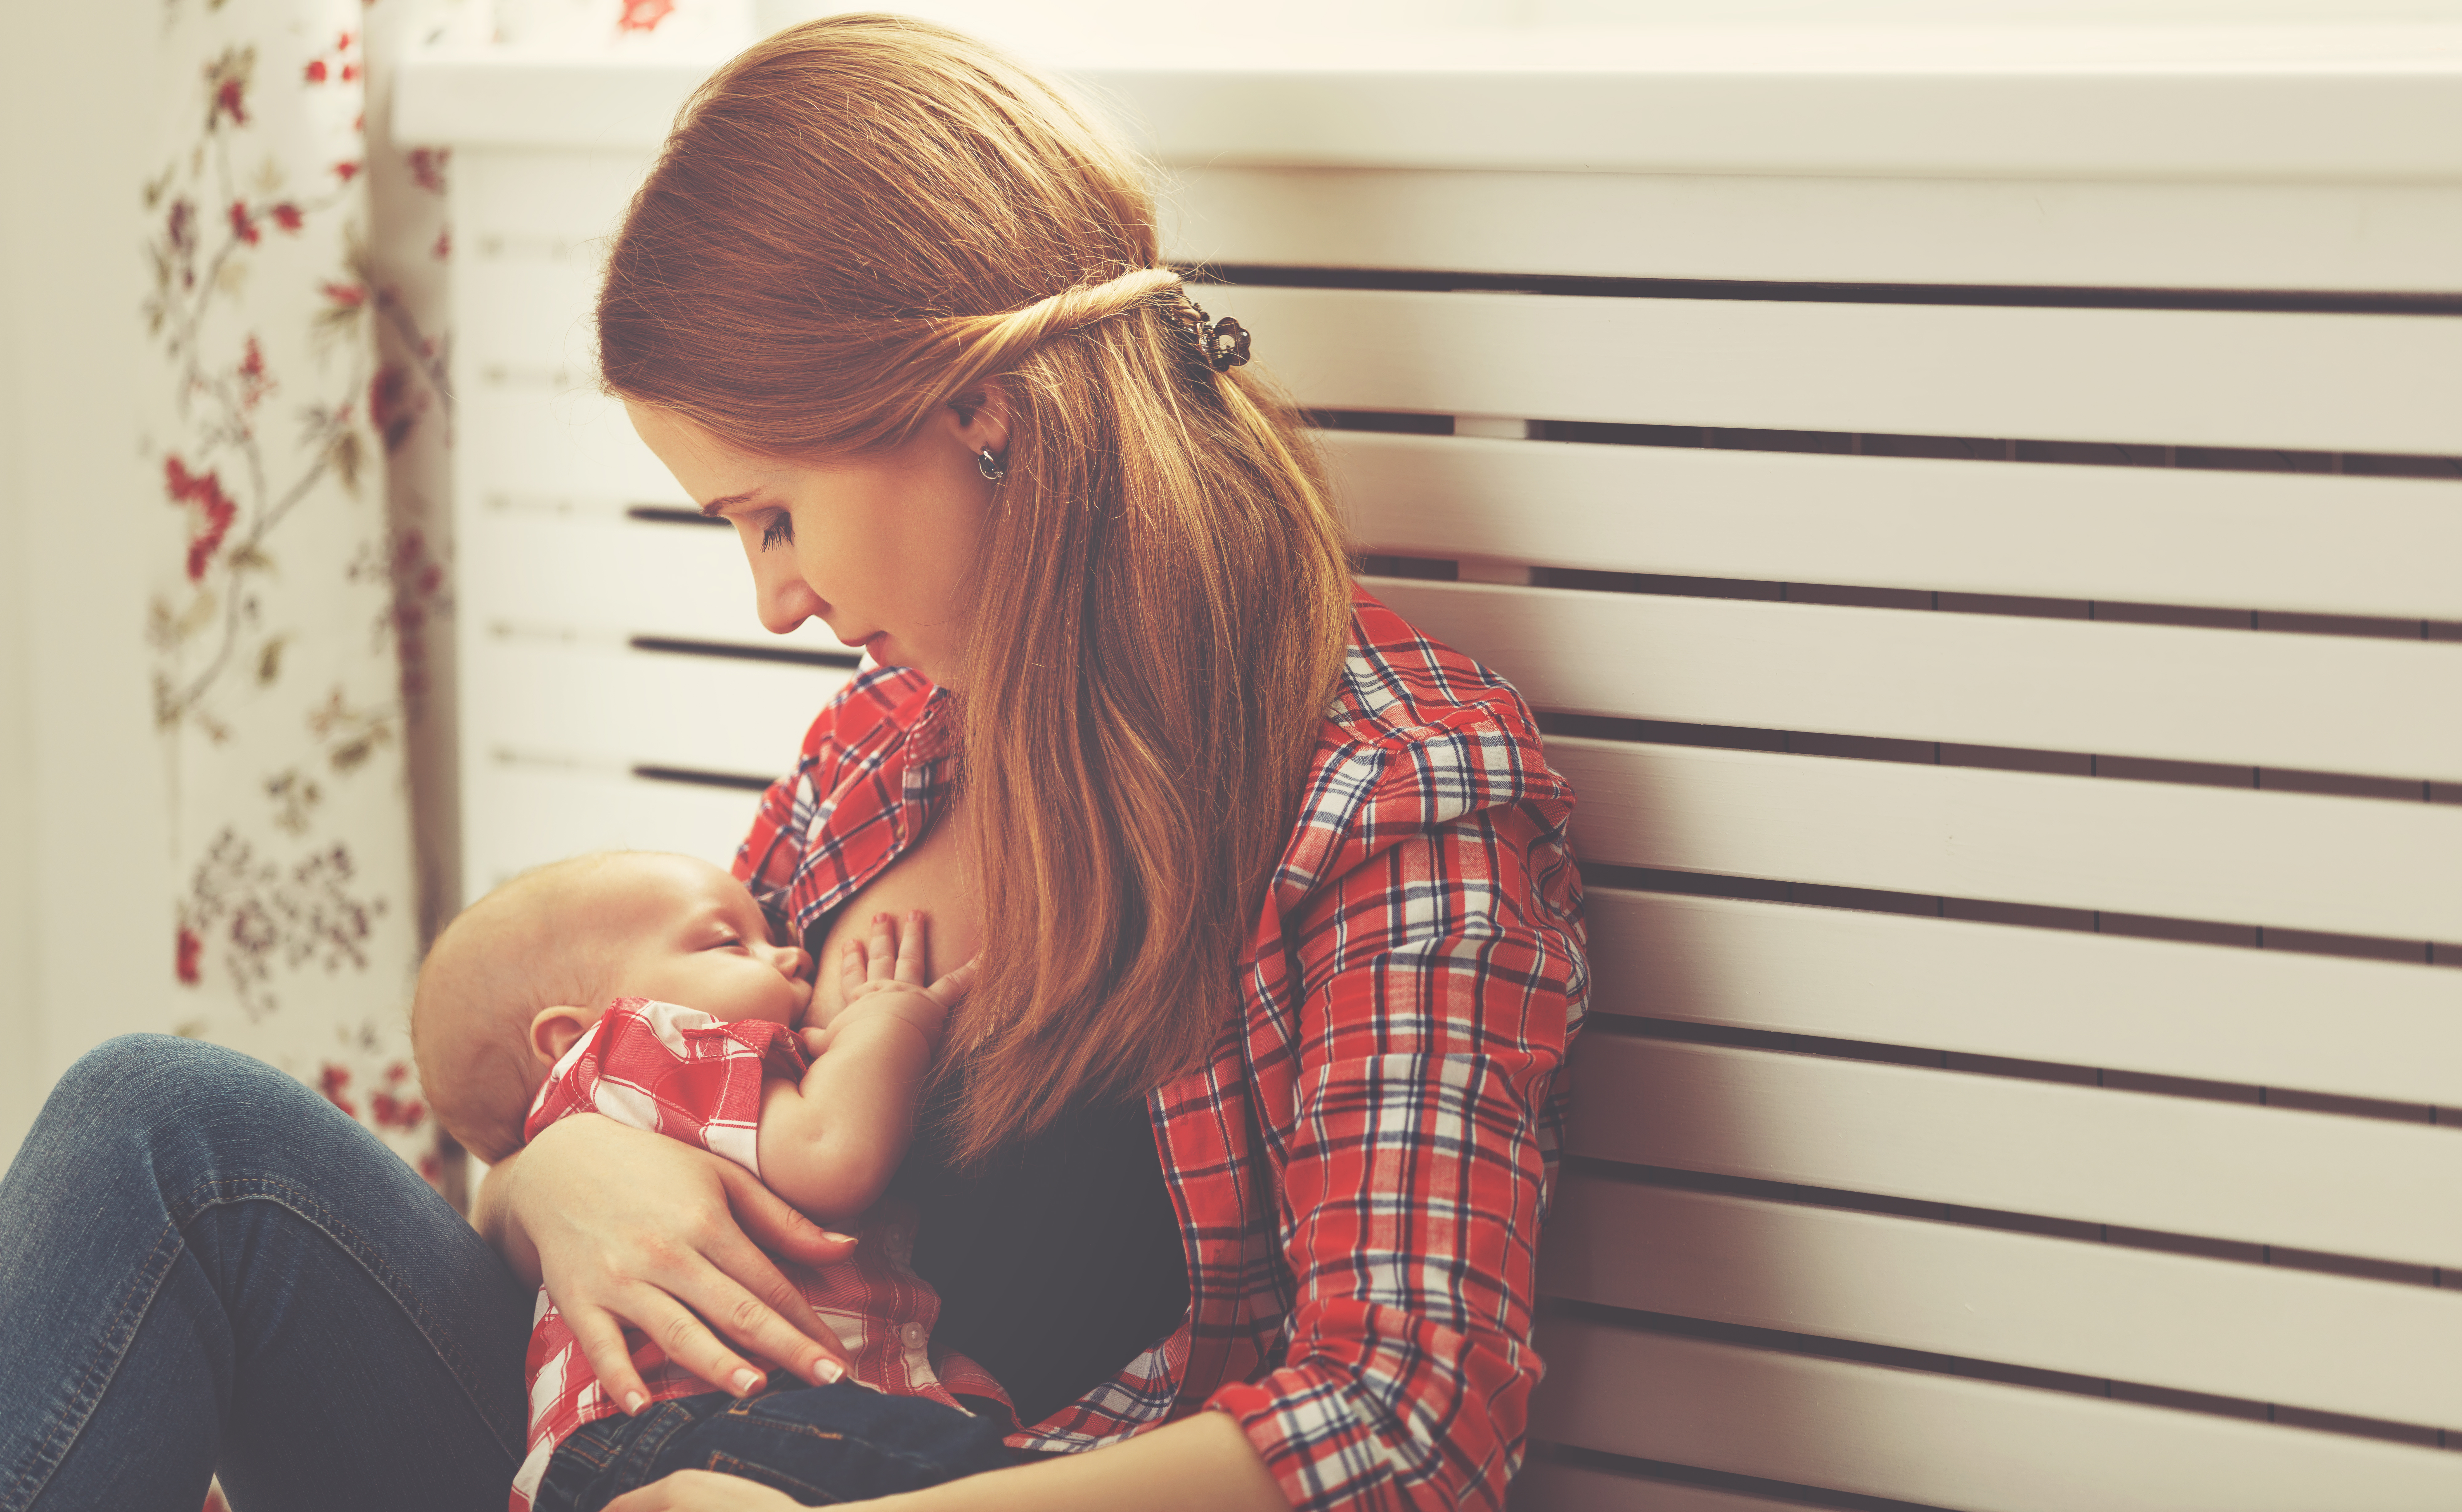 15 Productive Things You Can Do While Breastfeeding